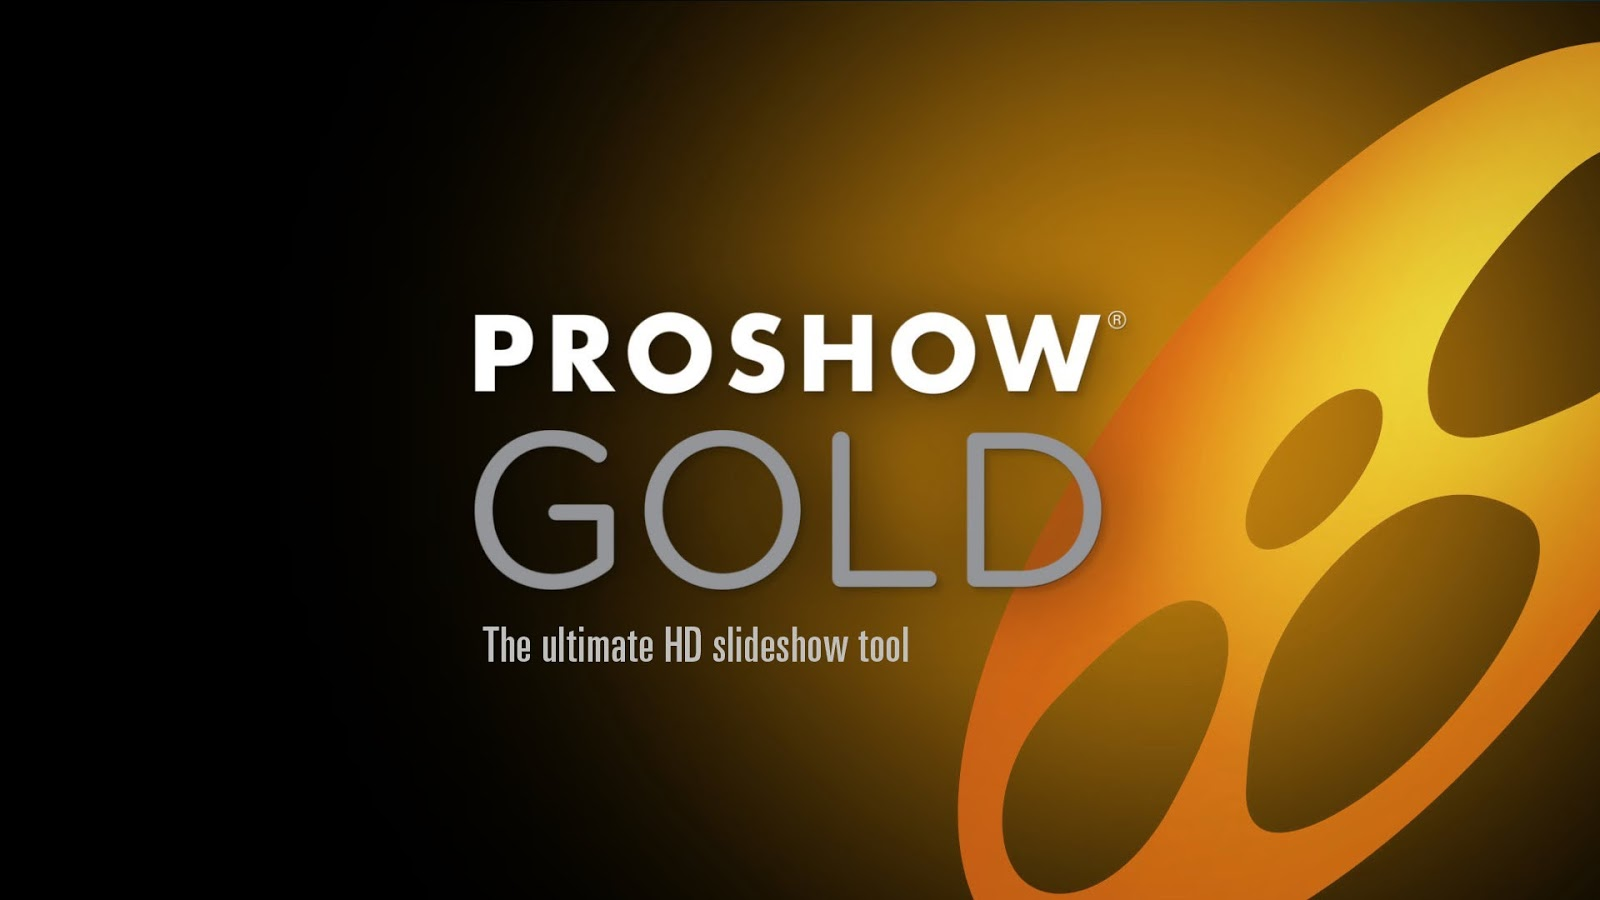 proshow gold 7.0 key free download